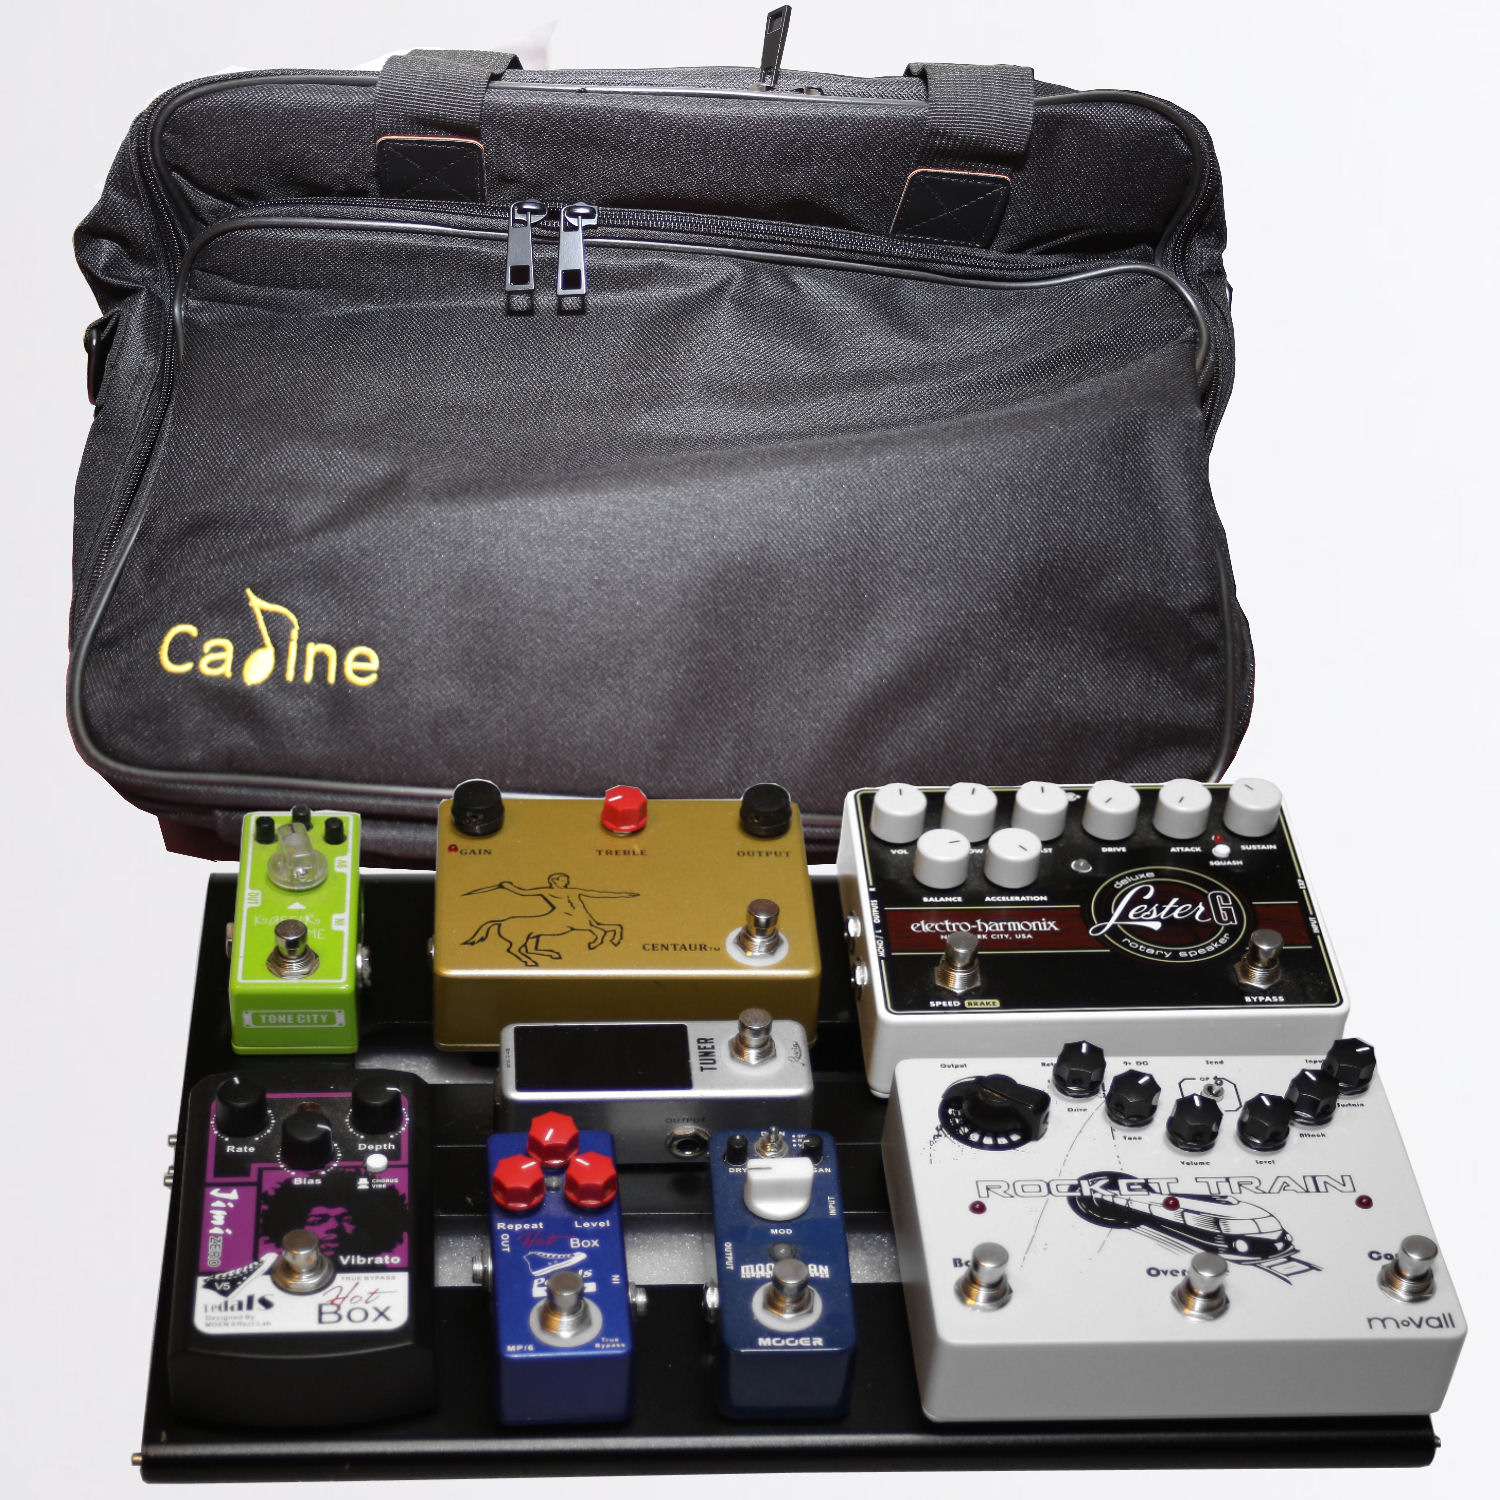 Caline CB-106 Pedalboard and Bag